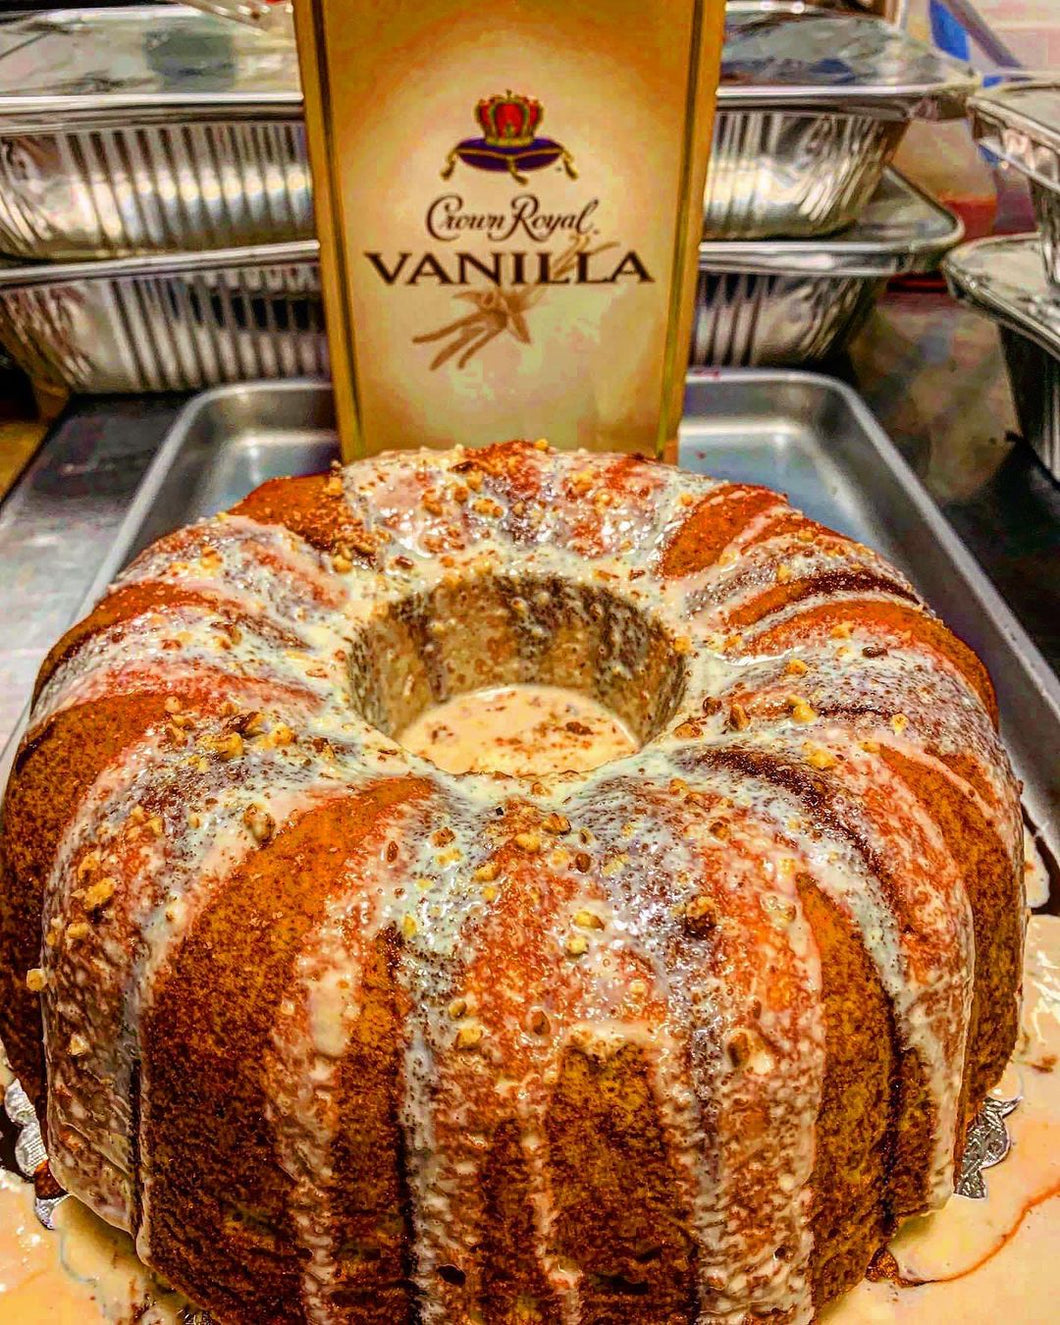 Crown Royal French Vanilla Infused Bundt Cake